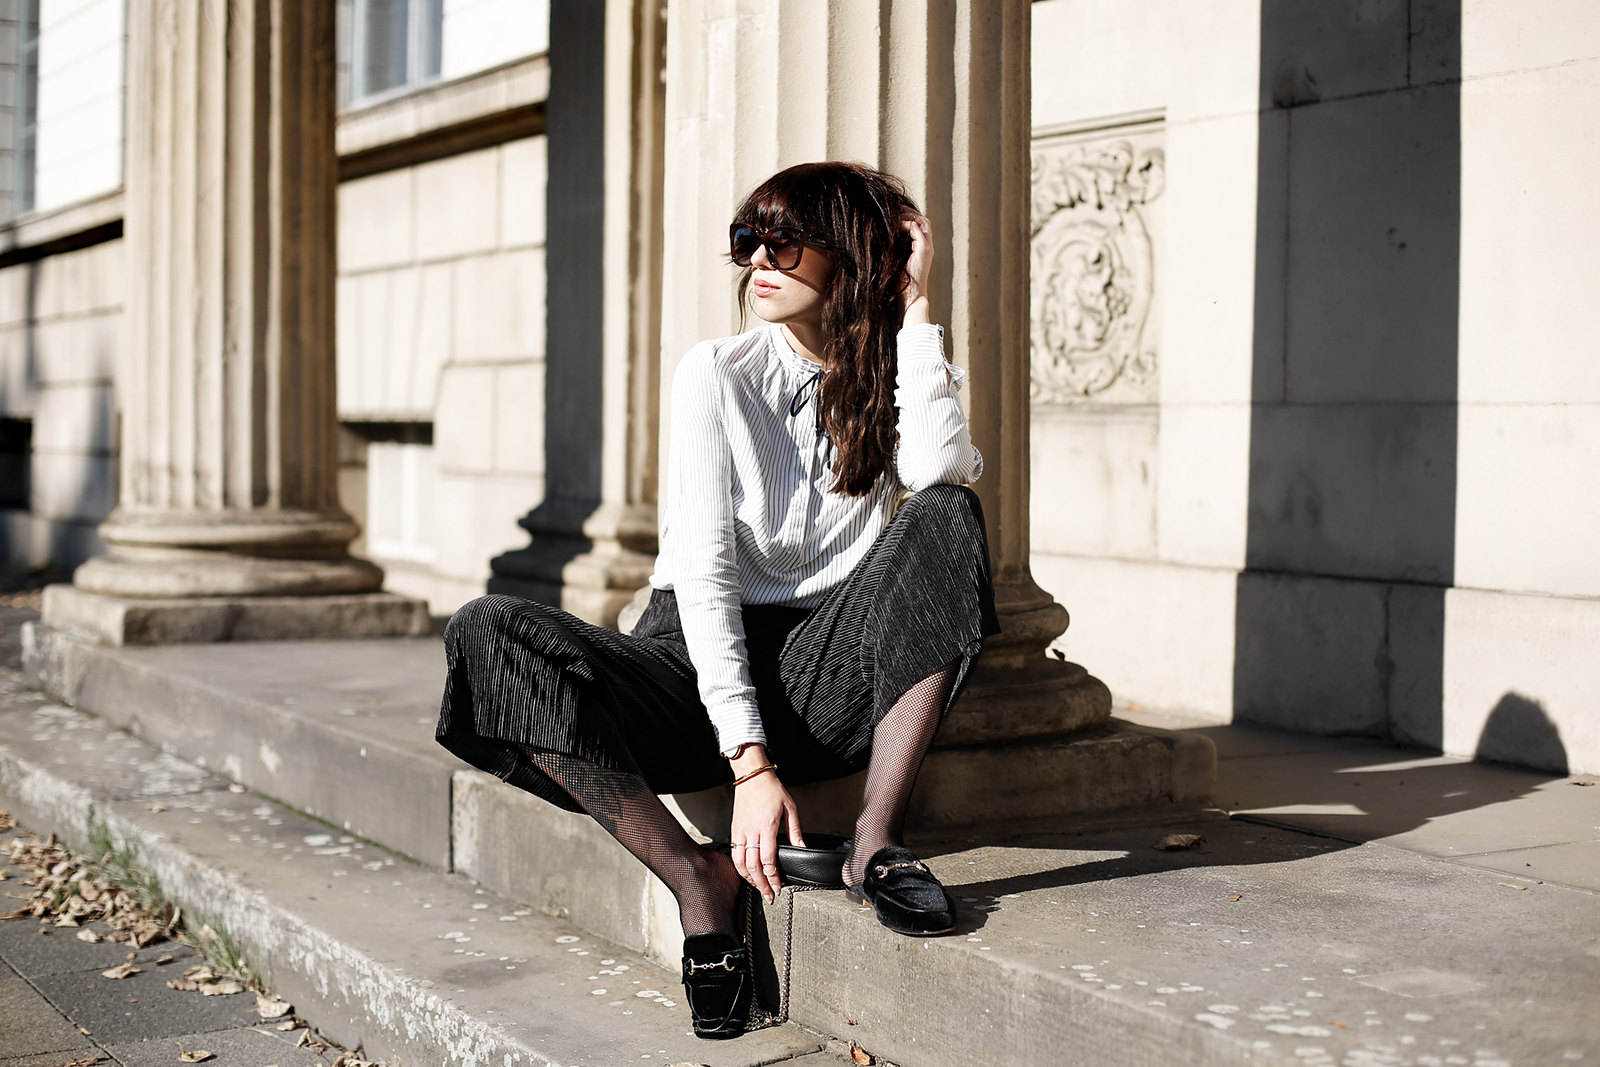 loafer brogues mules slippers velvet gucci princetown shoes autumn minimal black white stripes celine audrey sunglasses gucci soho bag promod blouse earrings hoop statement fashionblogger cats & dogs ricarda schernus modeblogger 3